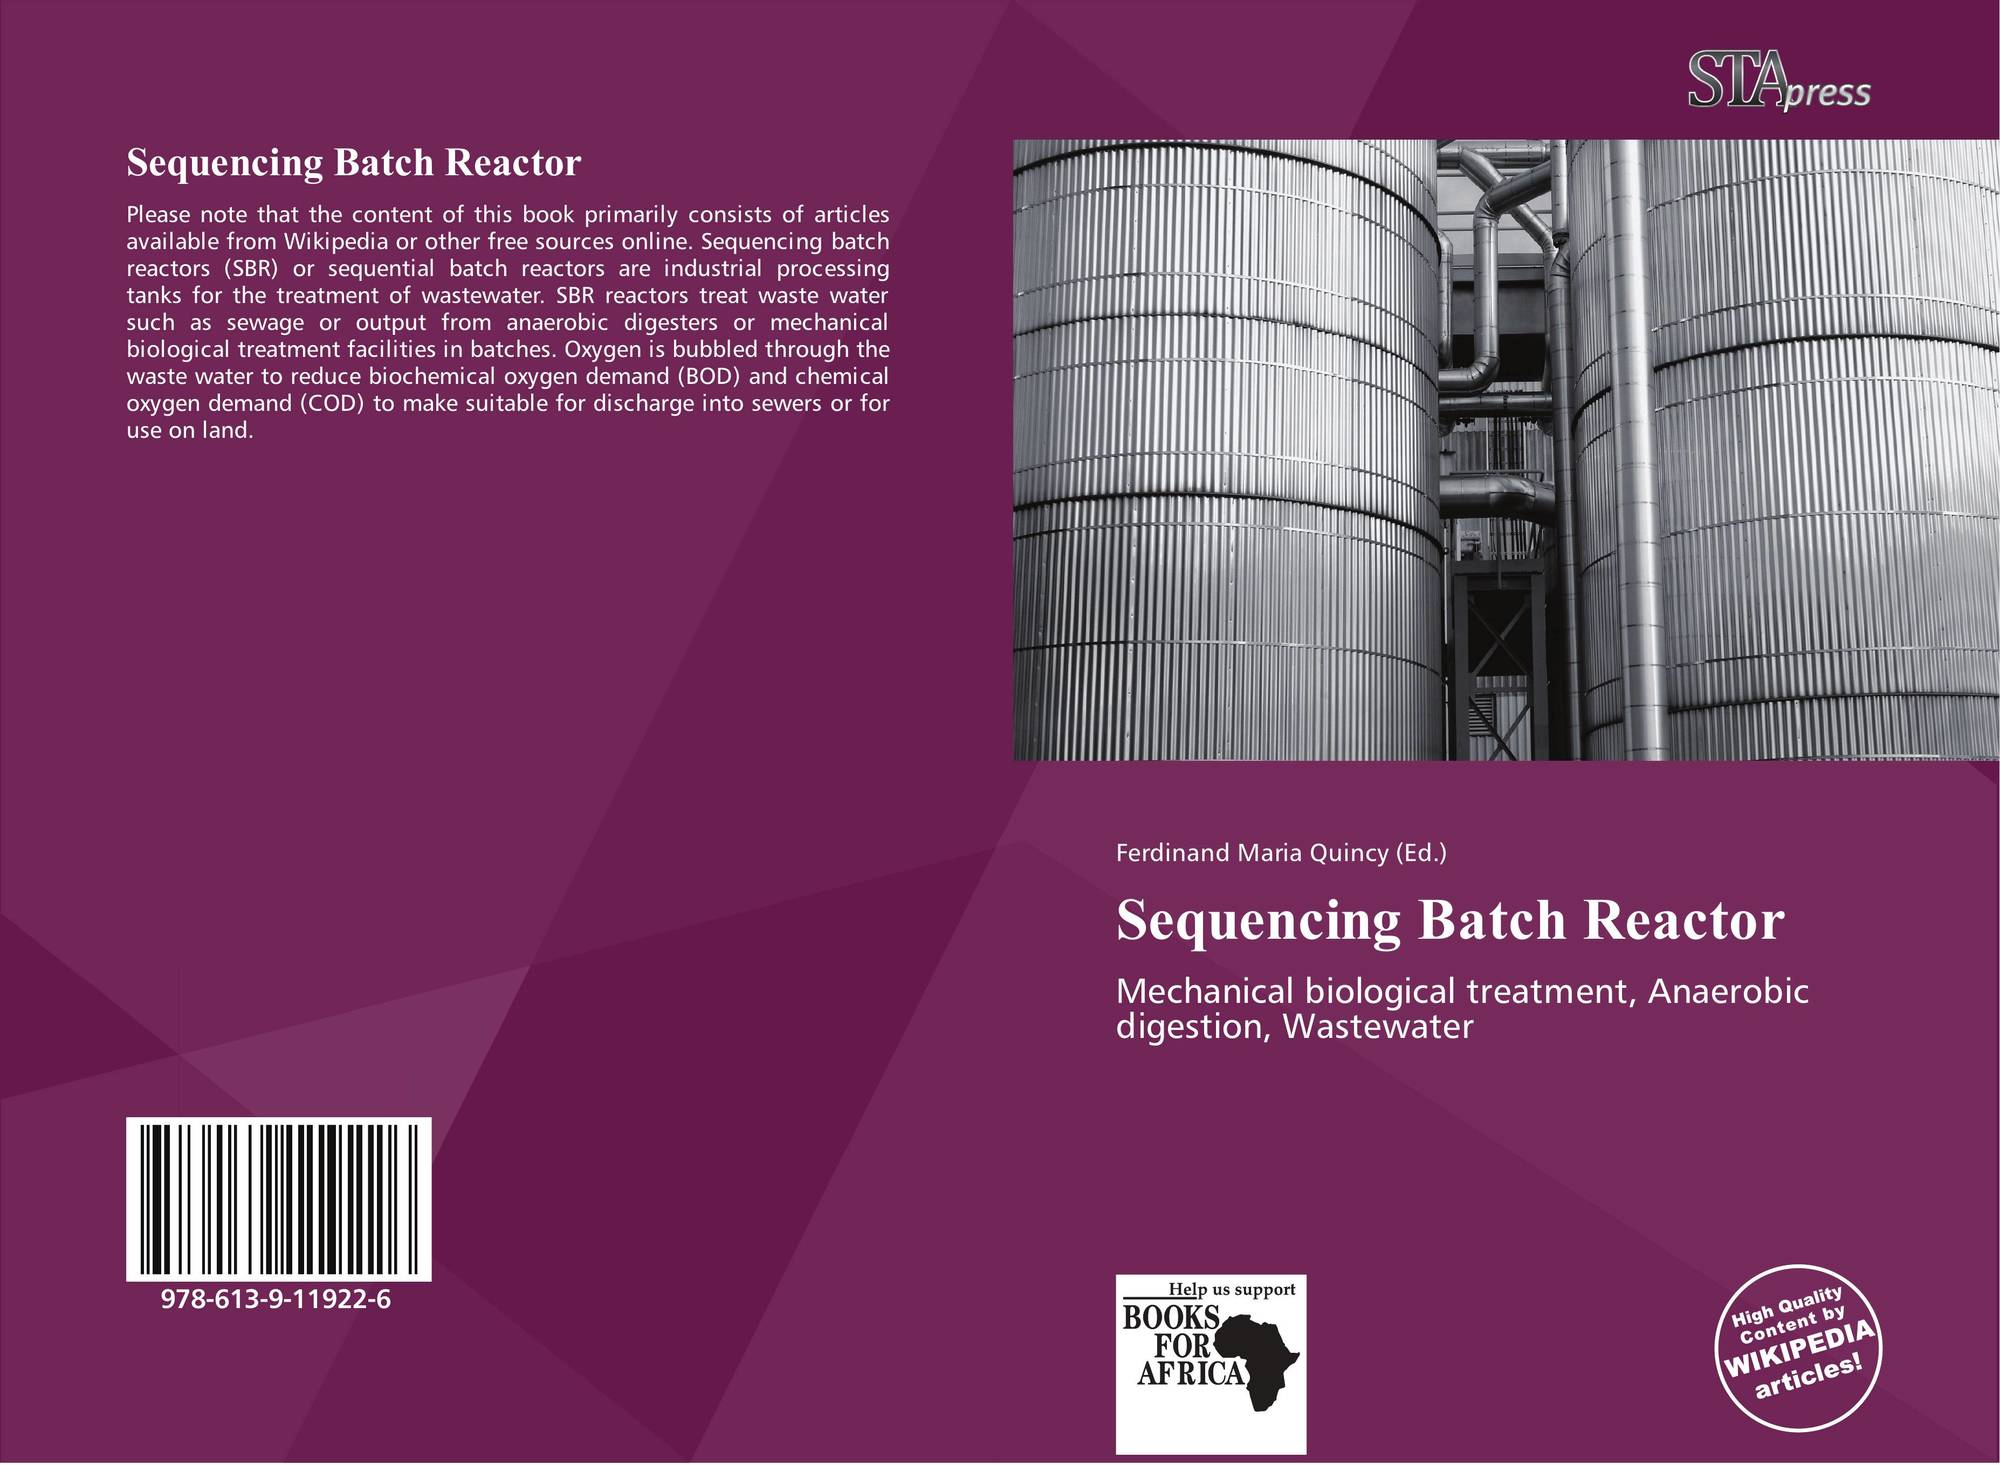 sequencing batch reactor The batch reactor is the generic term for a type of vessel widely used in the process industriesits name is something of a misnomer since vessels of this type are used for a variety of process operations such as solids dissolution, product mixing, chemical reactions, batch distillation, crystallization, liquid/liquid extraction and polymerization.